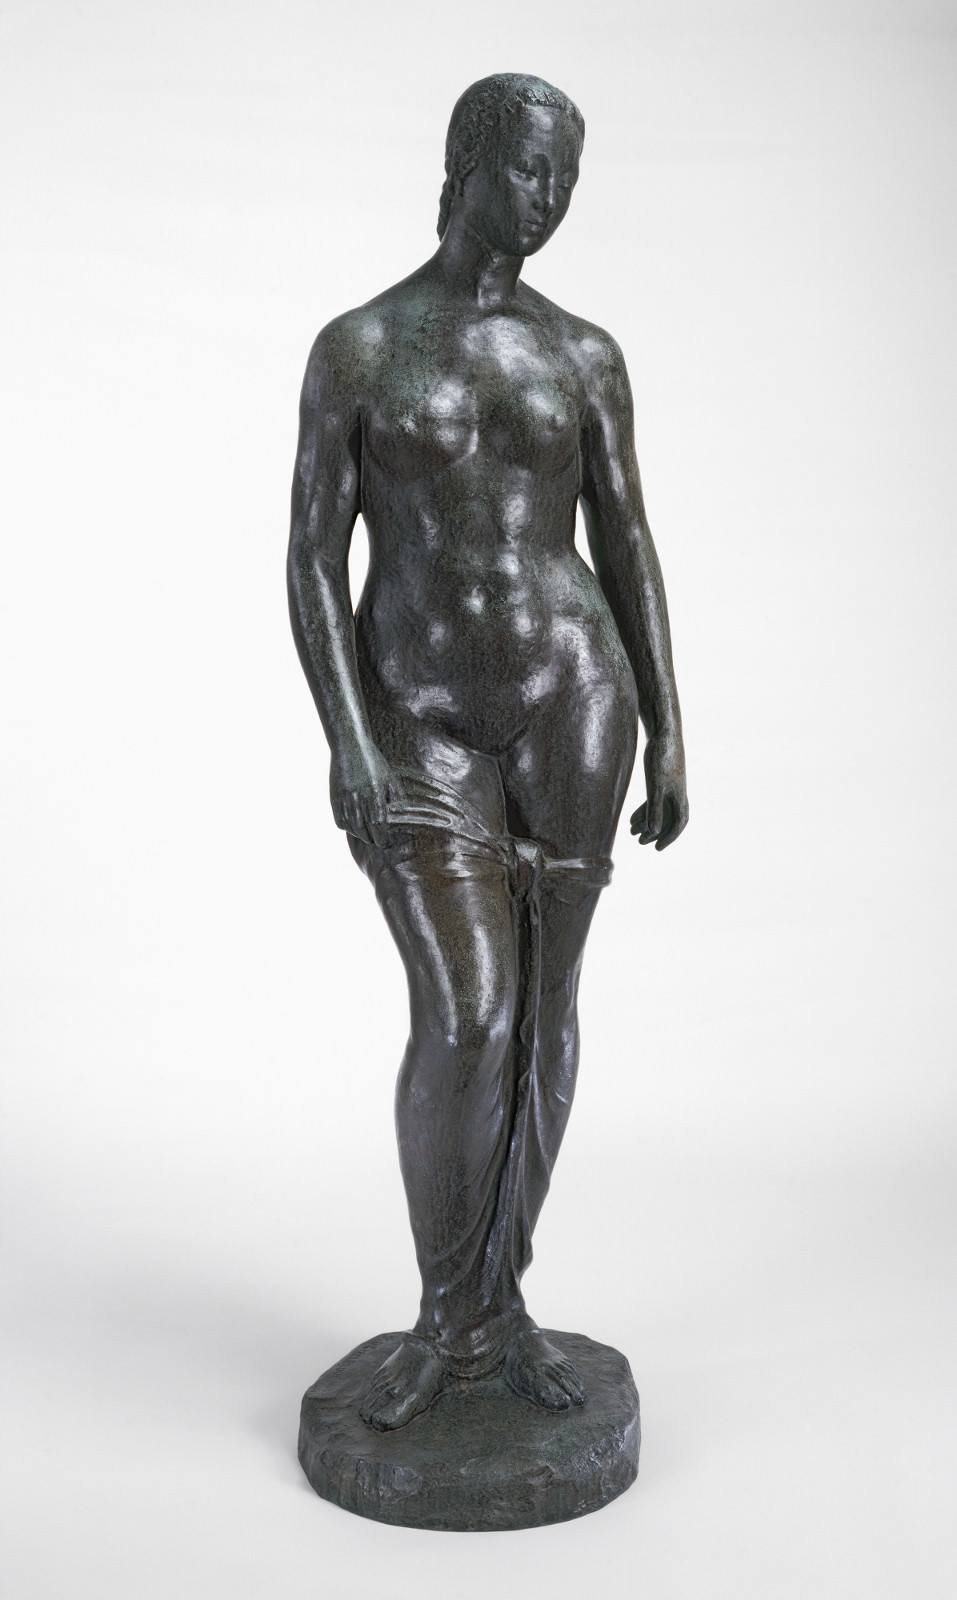 Fig. 3 - Situación del hombre, Wilhelm Lehmbruck, 1910, Bronce, 191.2 x 54 x 39.9 cm. National Gallery of Art, Washington. Fondo Bruce Mellon Ailsa.